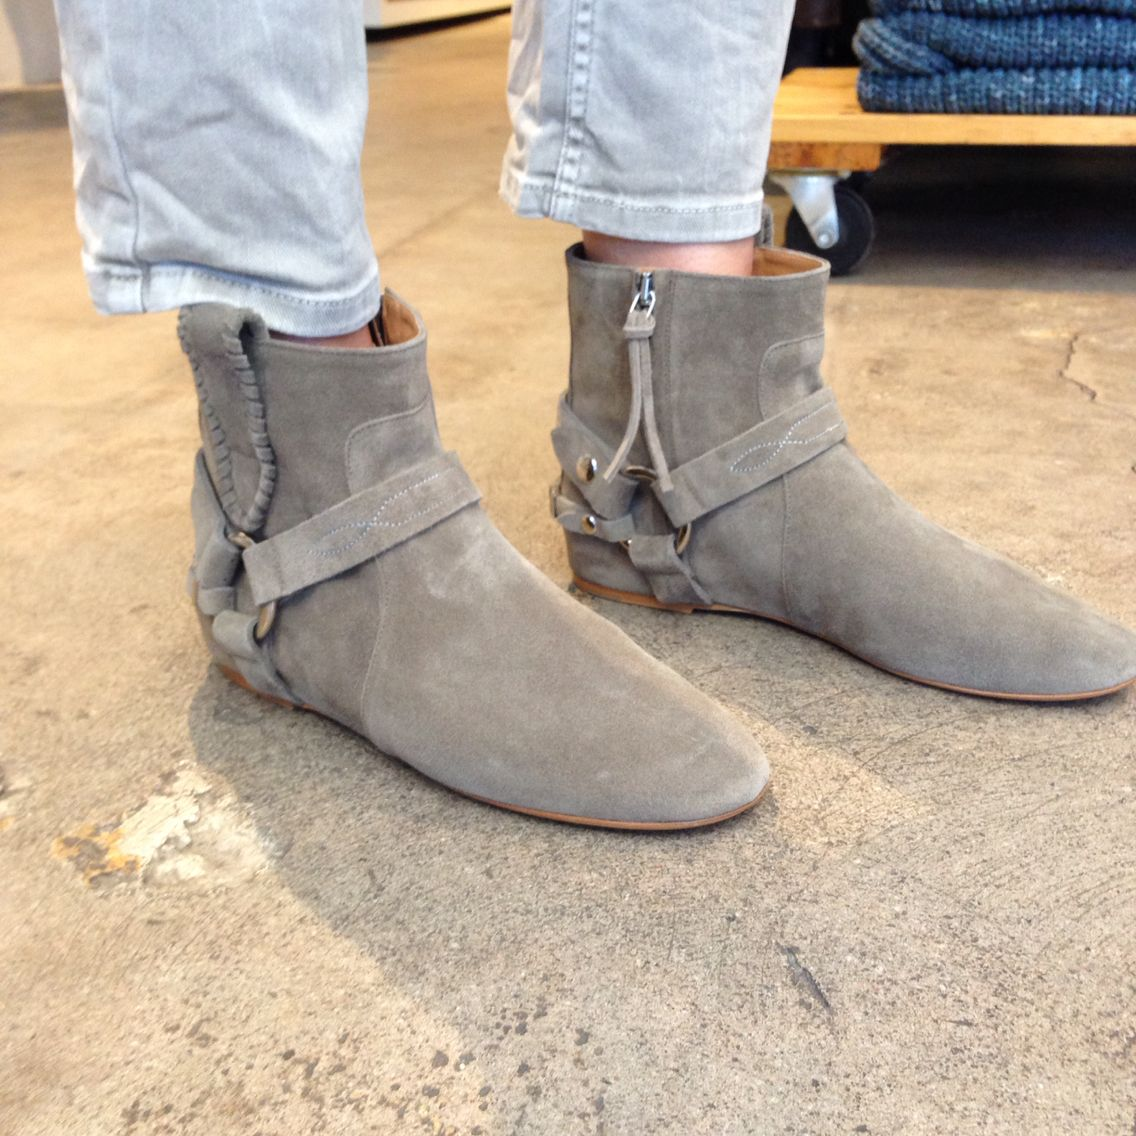 Isabel Marant Ralf boots!! In shop now!